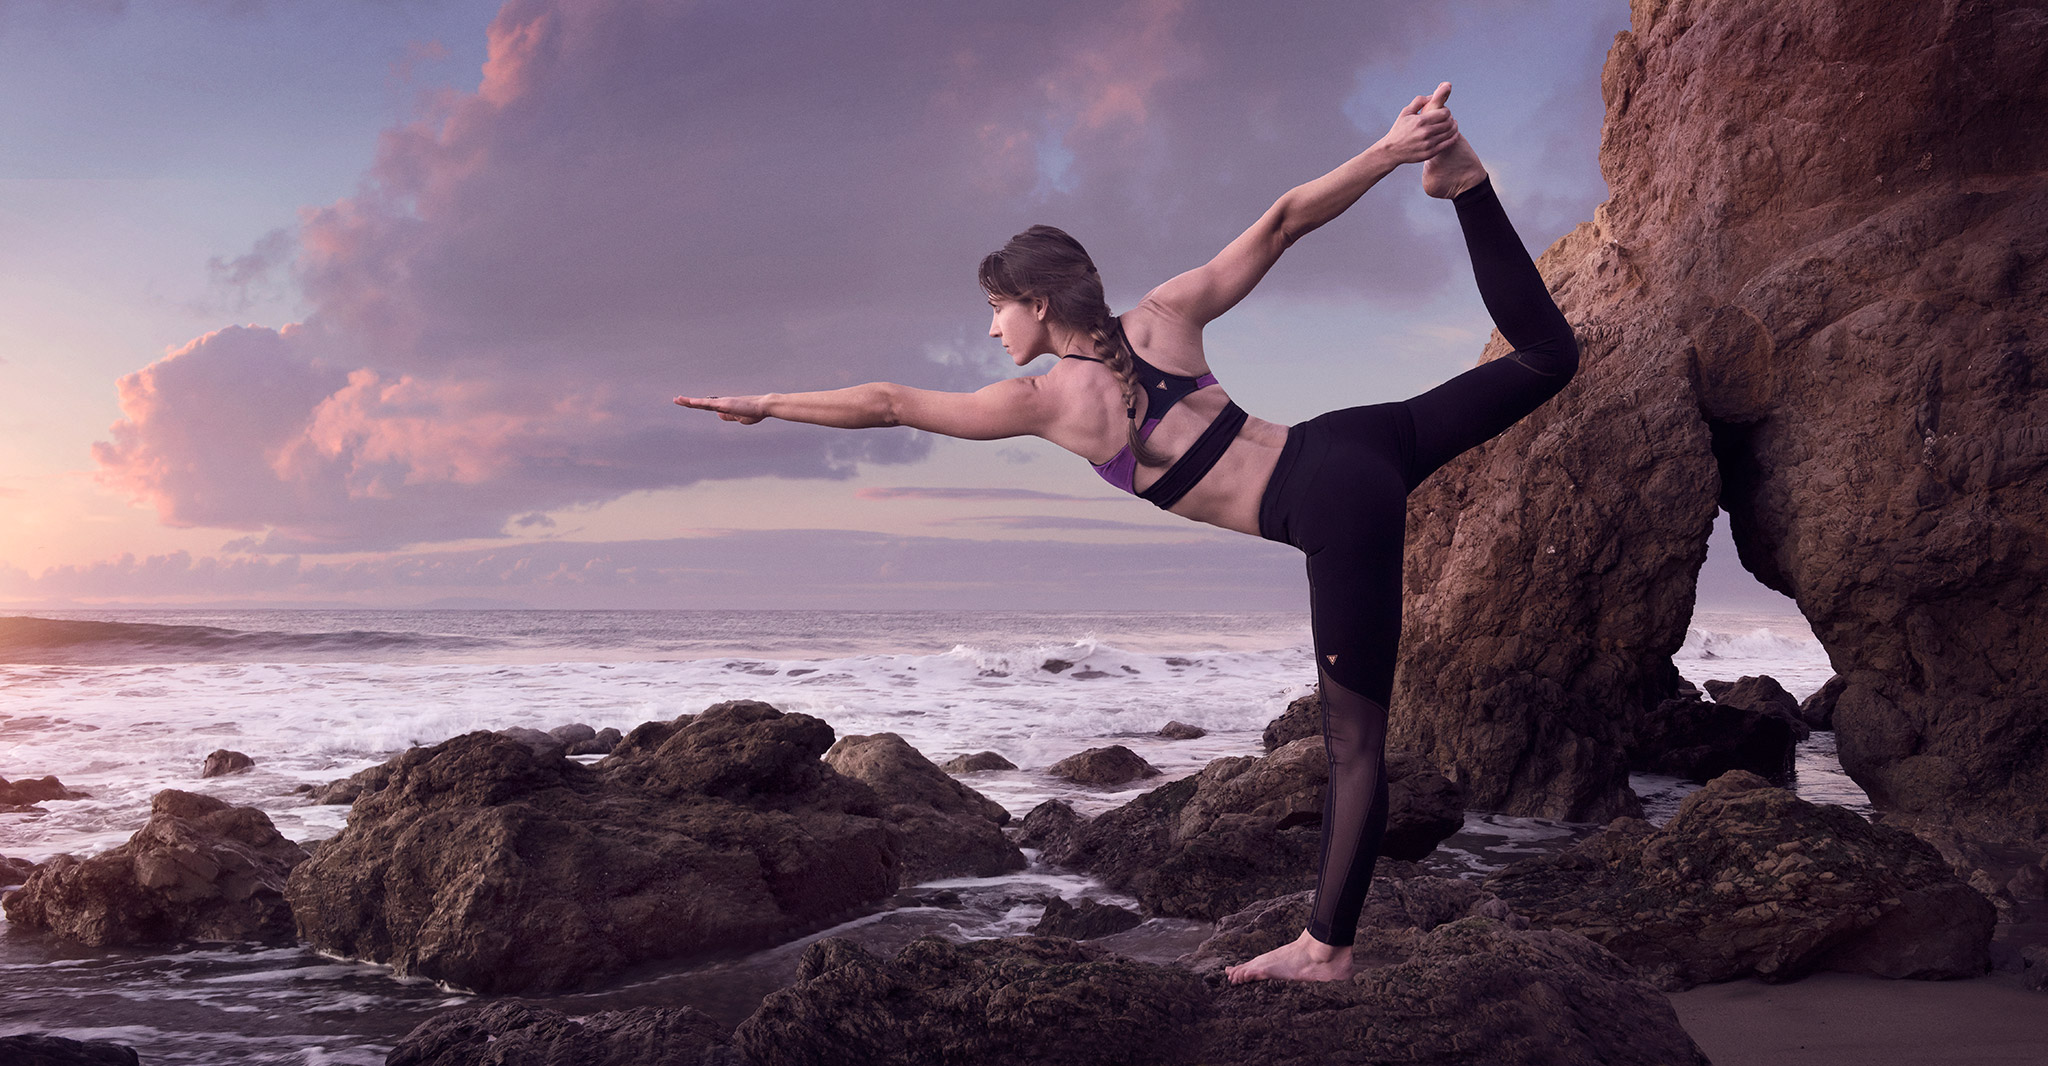 Yogi Balances at El Matador | Zach Ancell Photography